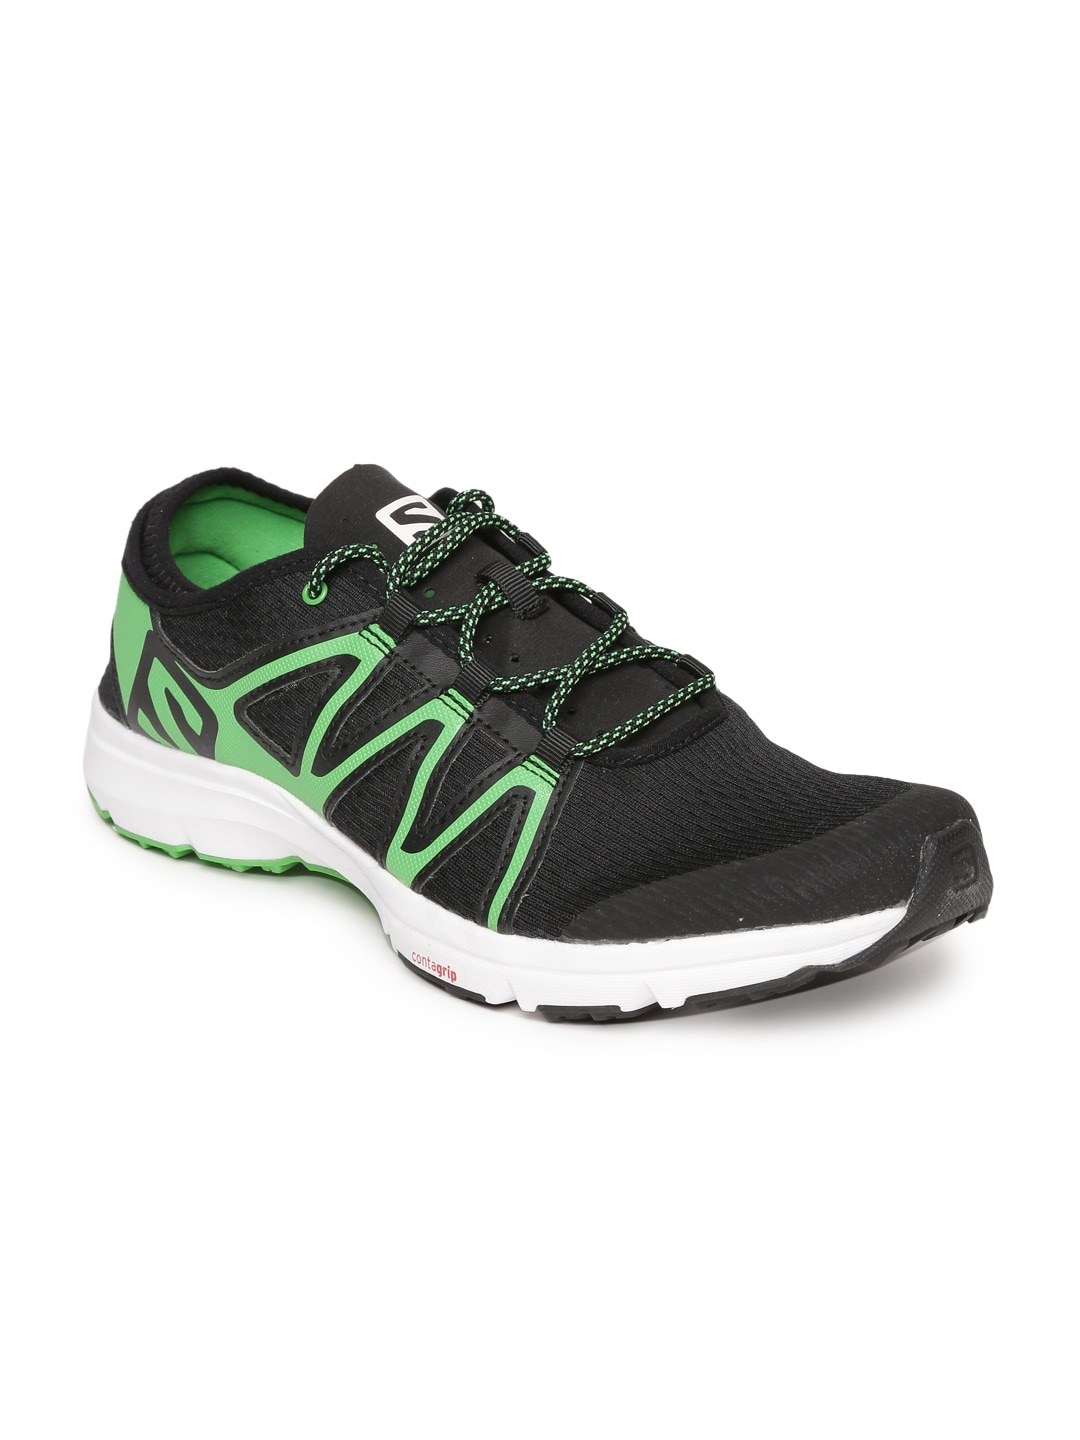 Sports Shoes - Buy Sport Shoes For Men   Women Online  ed57e2cc0ba